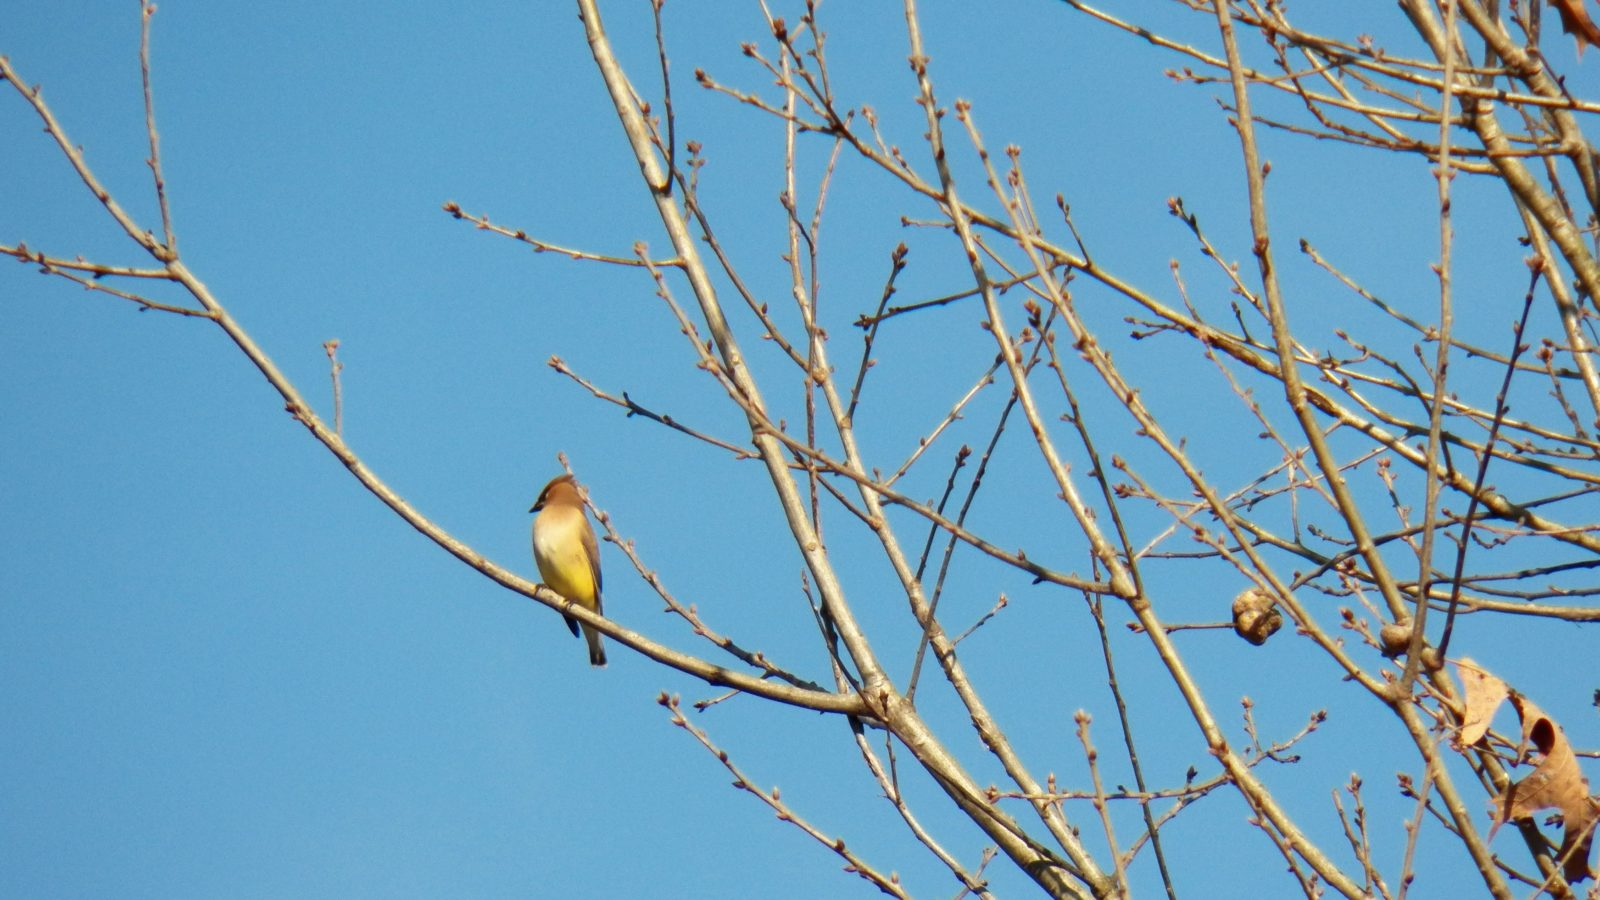 The Wary Waxwing